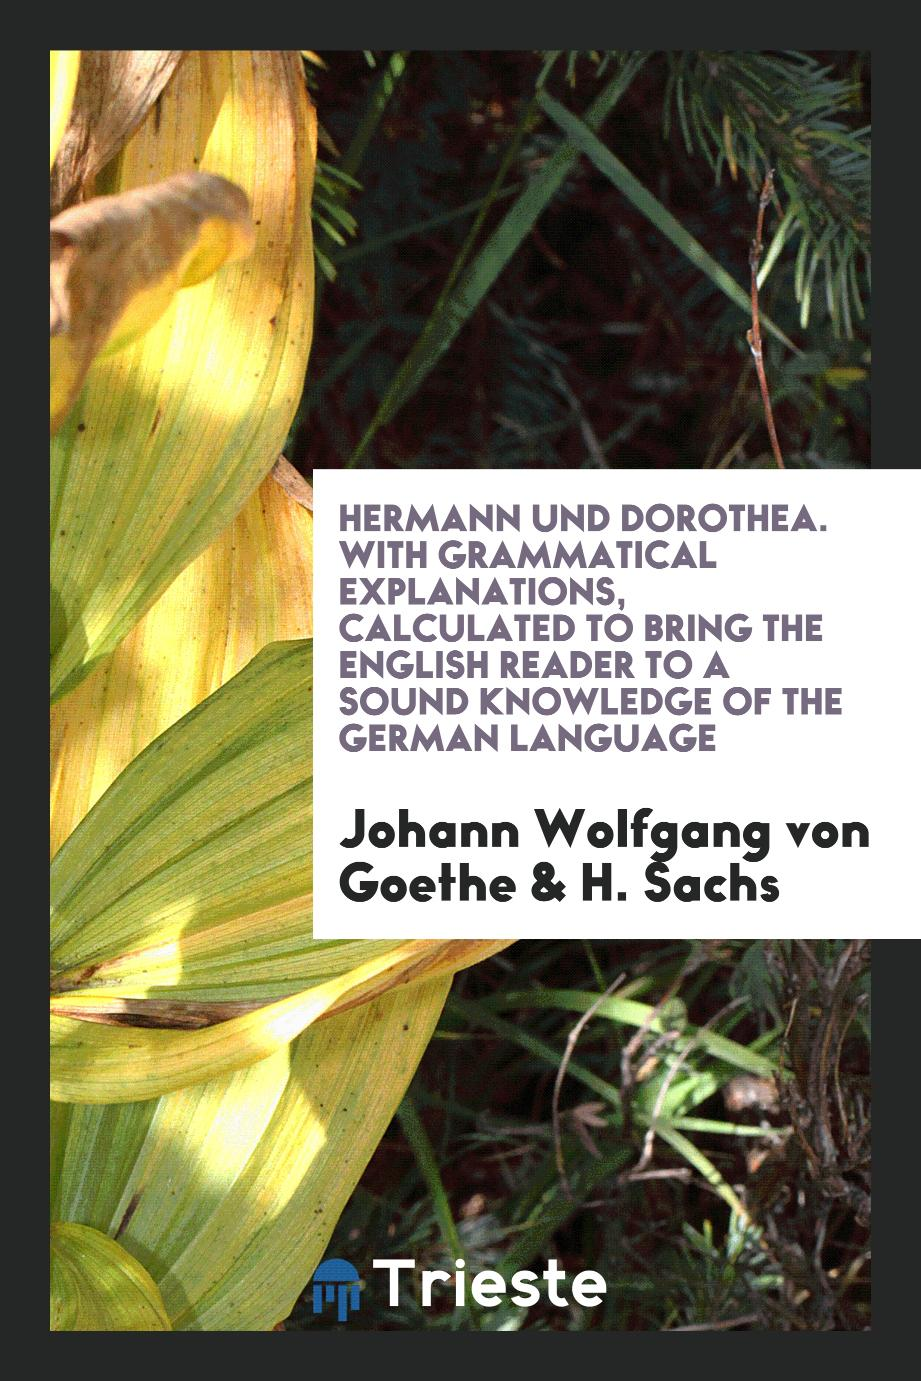 Hermann und Dorothea. With Grammatical Explanations, Calculated to Bring the English Reader to a Sound Knowledge of the German Language